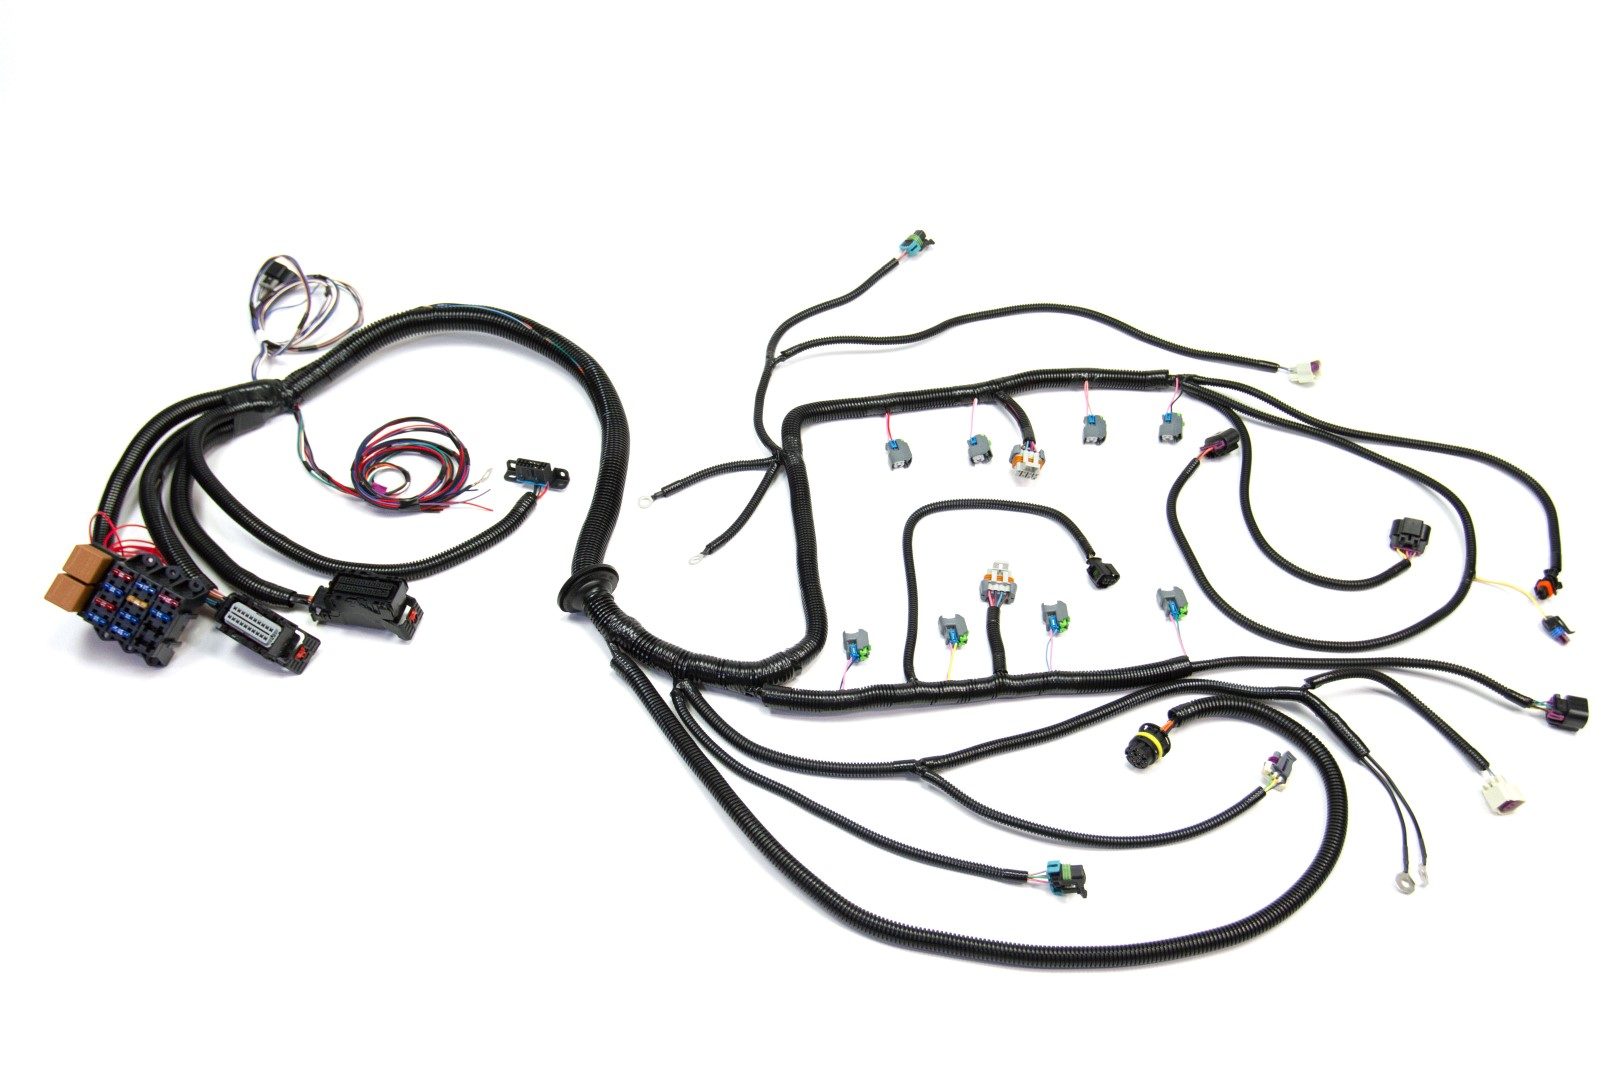 hight resolution of 08 14 ls3 6 2l standalone wiring harness w 6l80e zero gravity wiring harness ls3